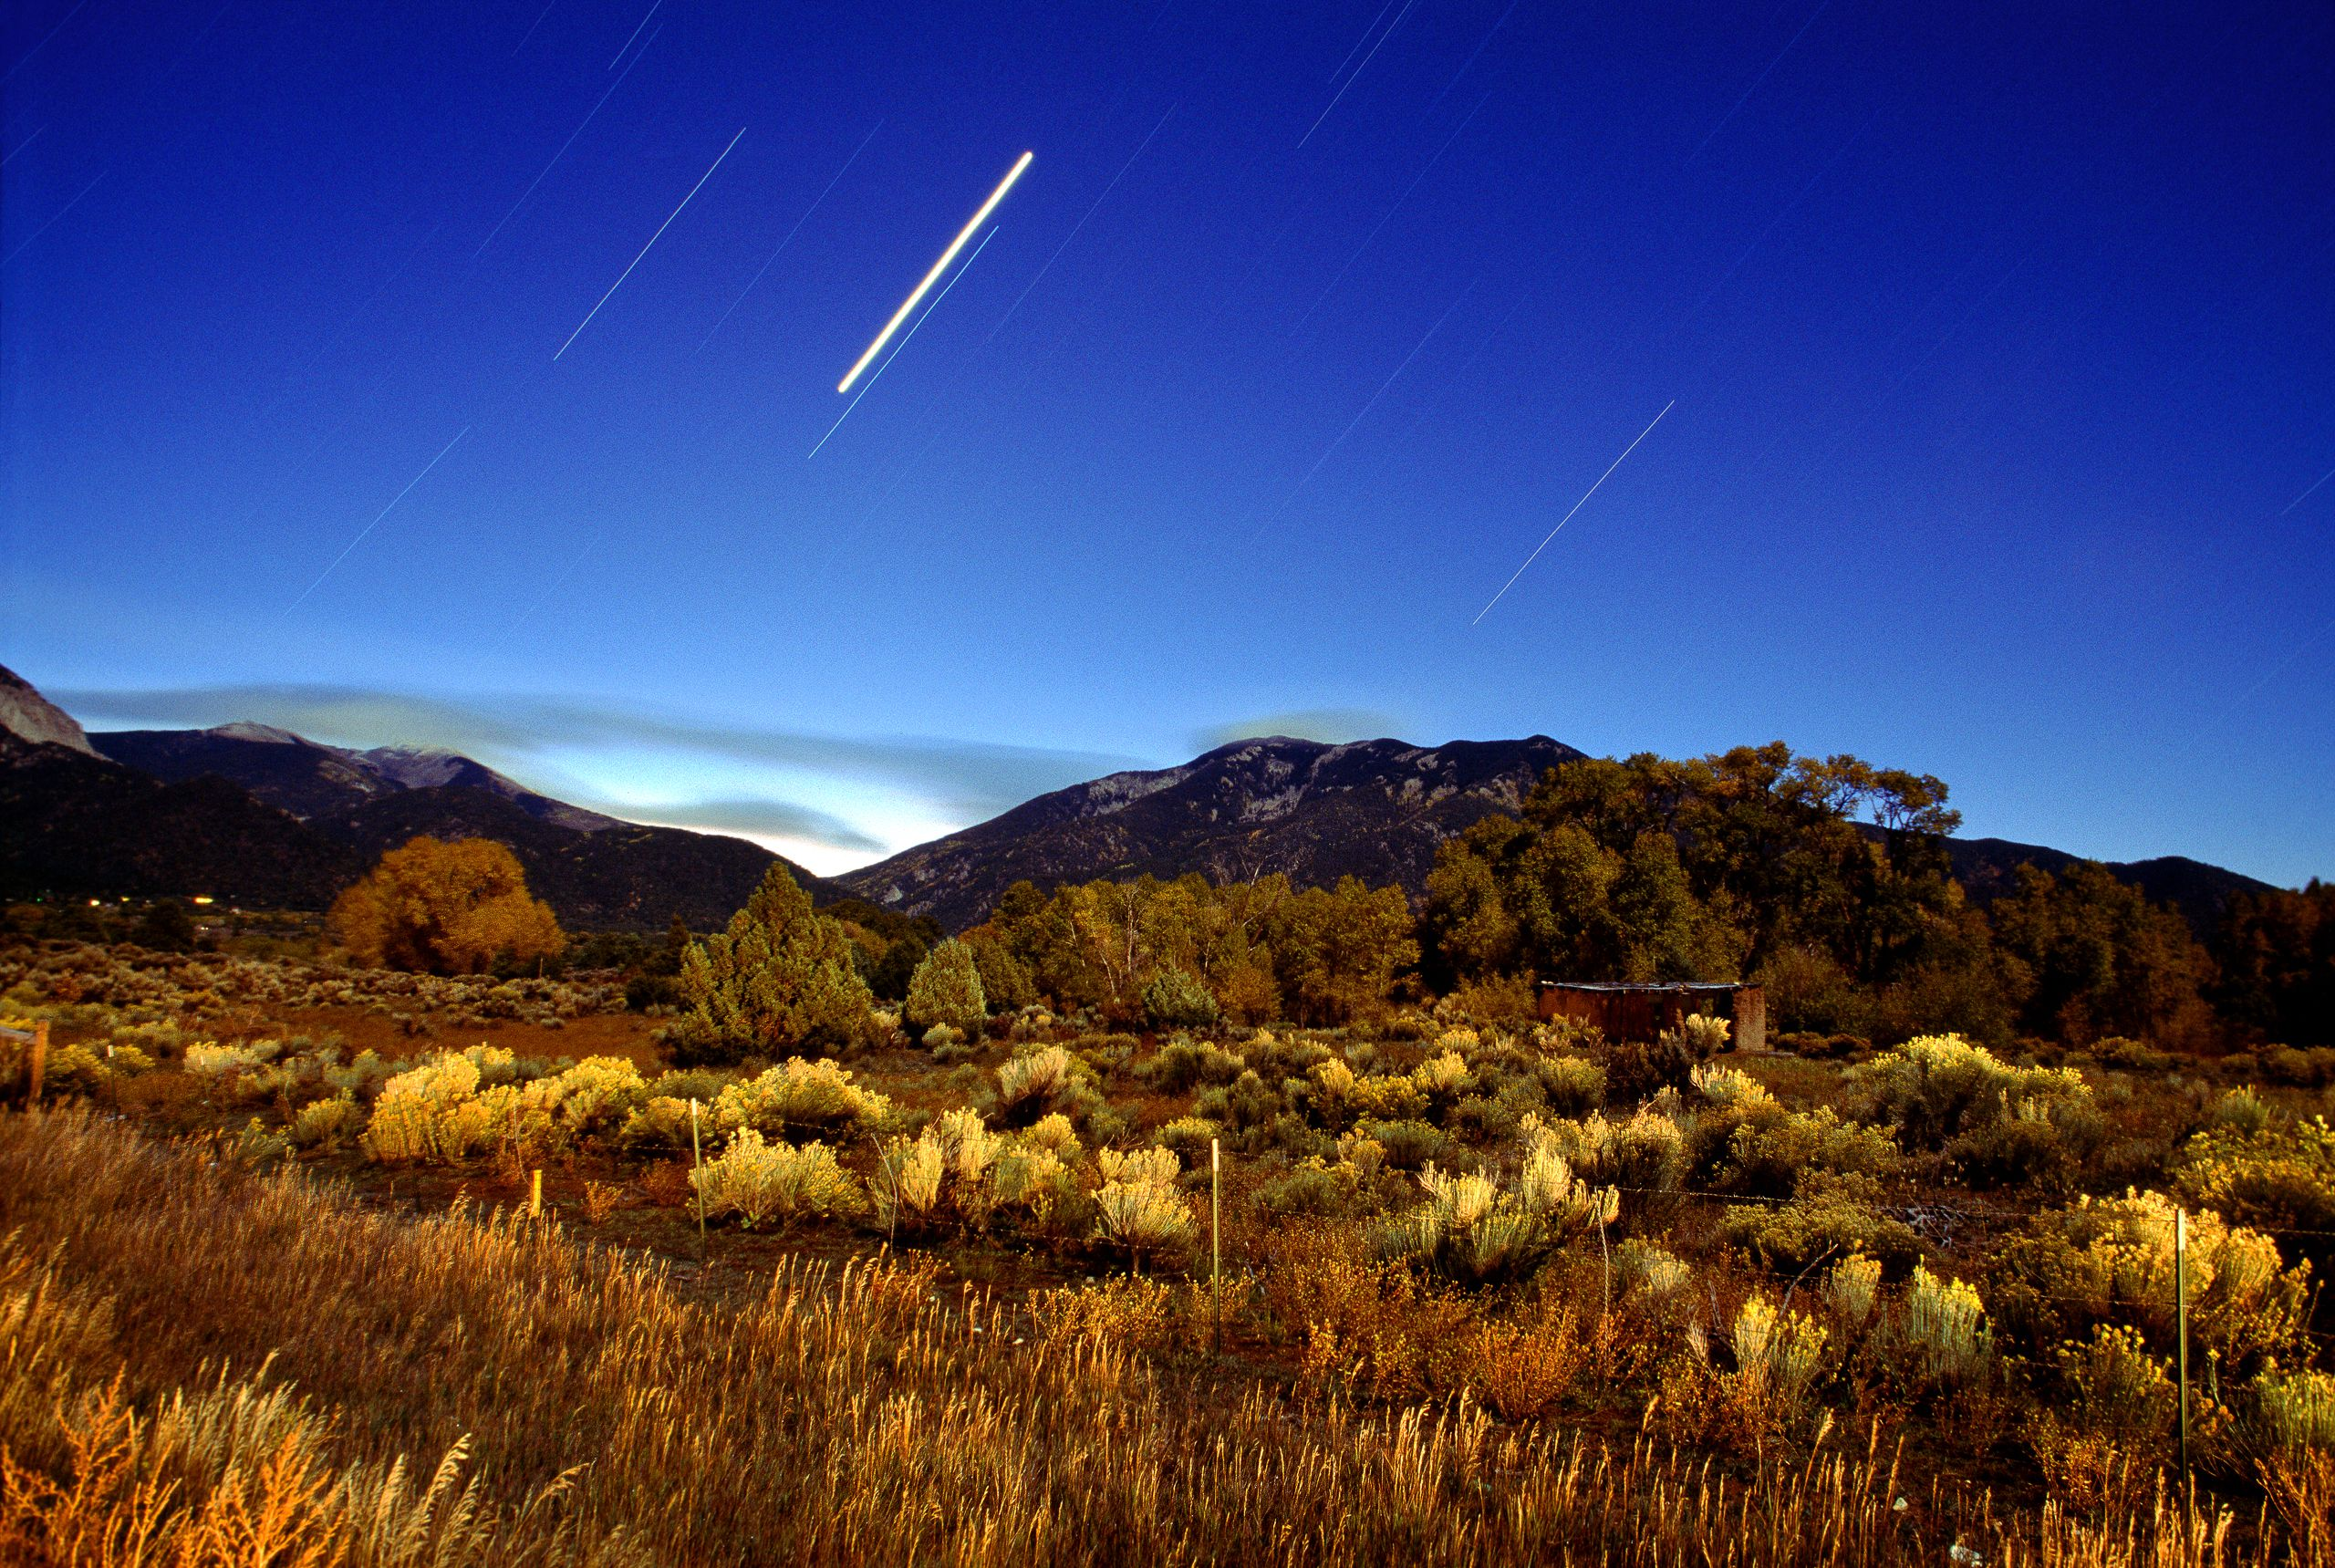 Sacred Mountain and Star Trails